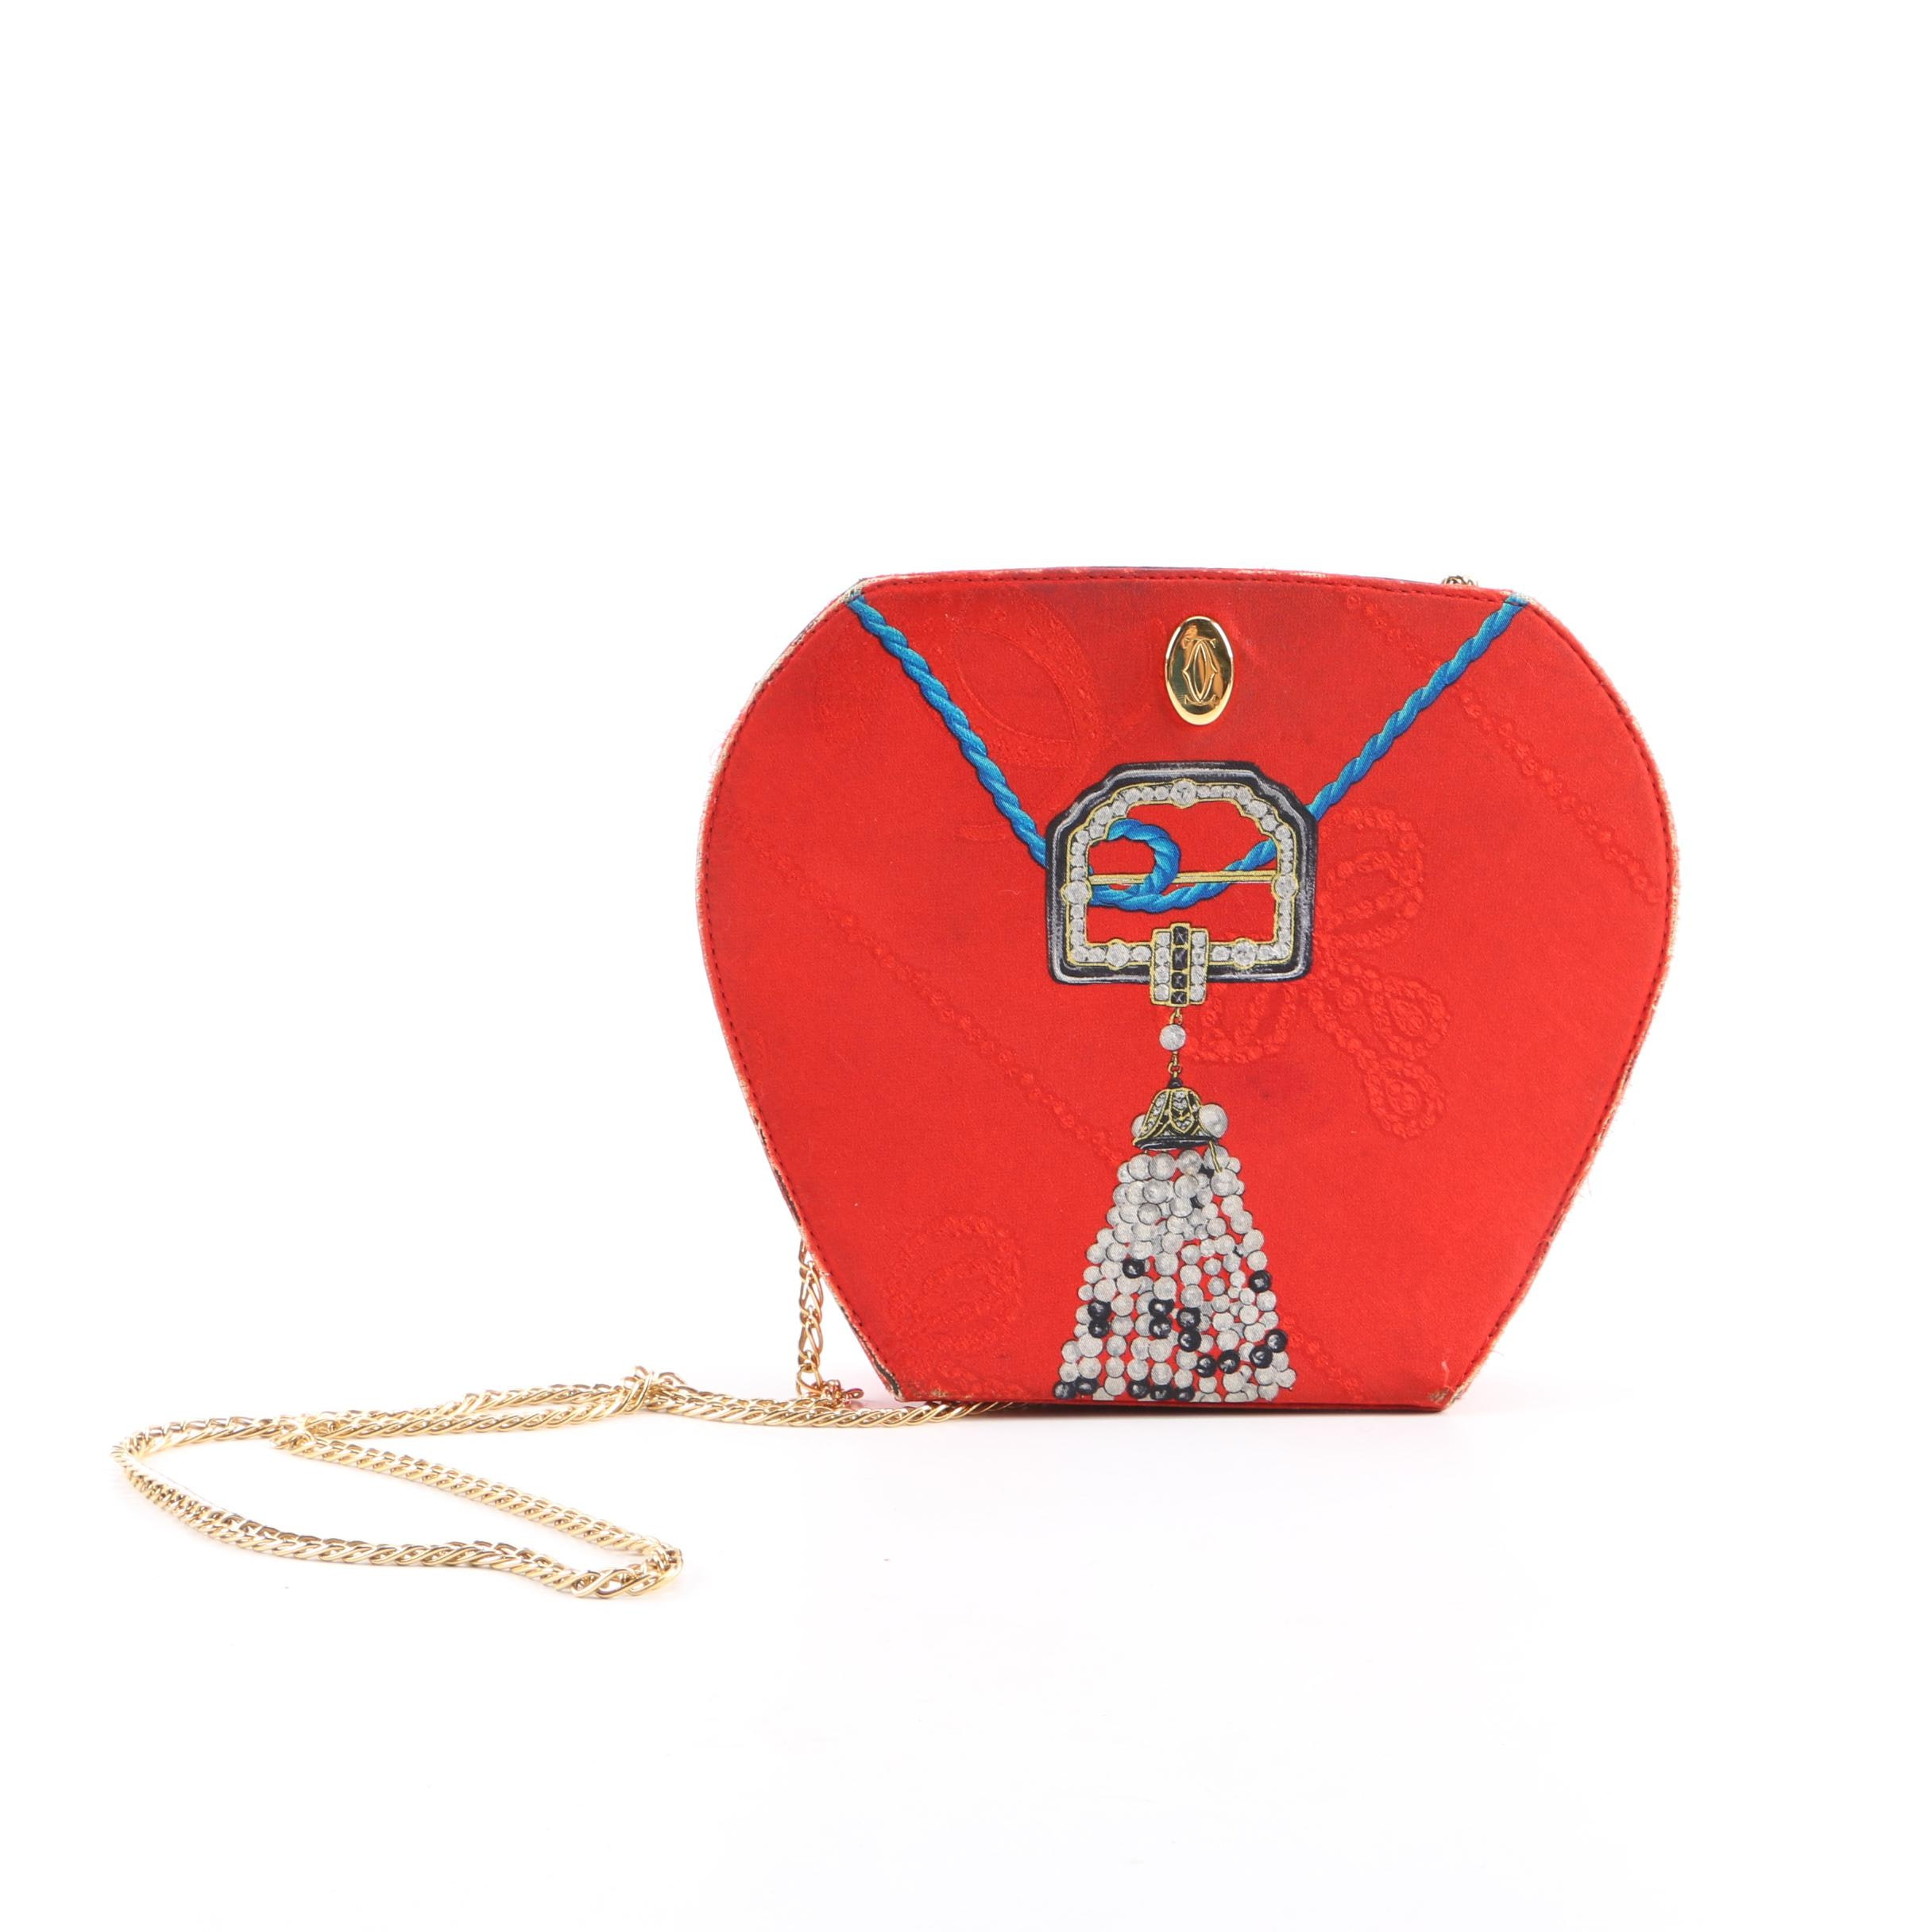 1980-1989 Cartier Les Must Red Silk Jewel Necklace and Gold Chain Design Clutch